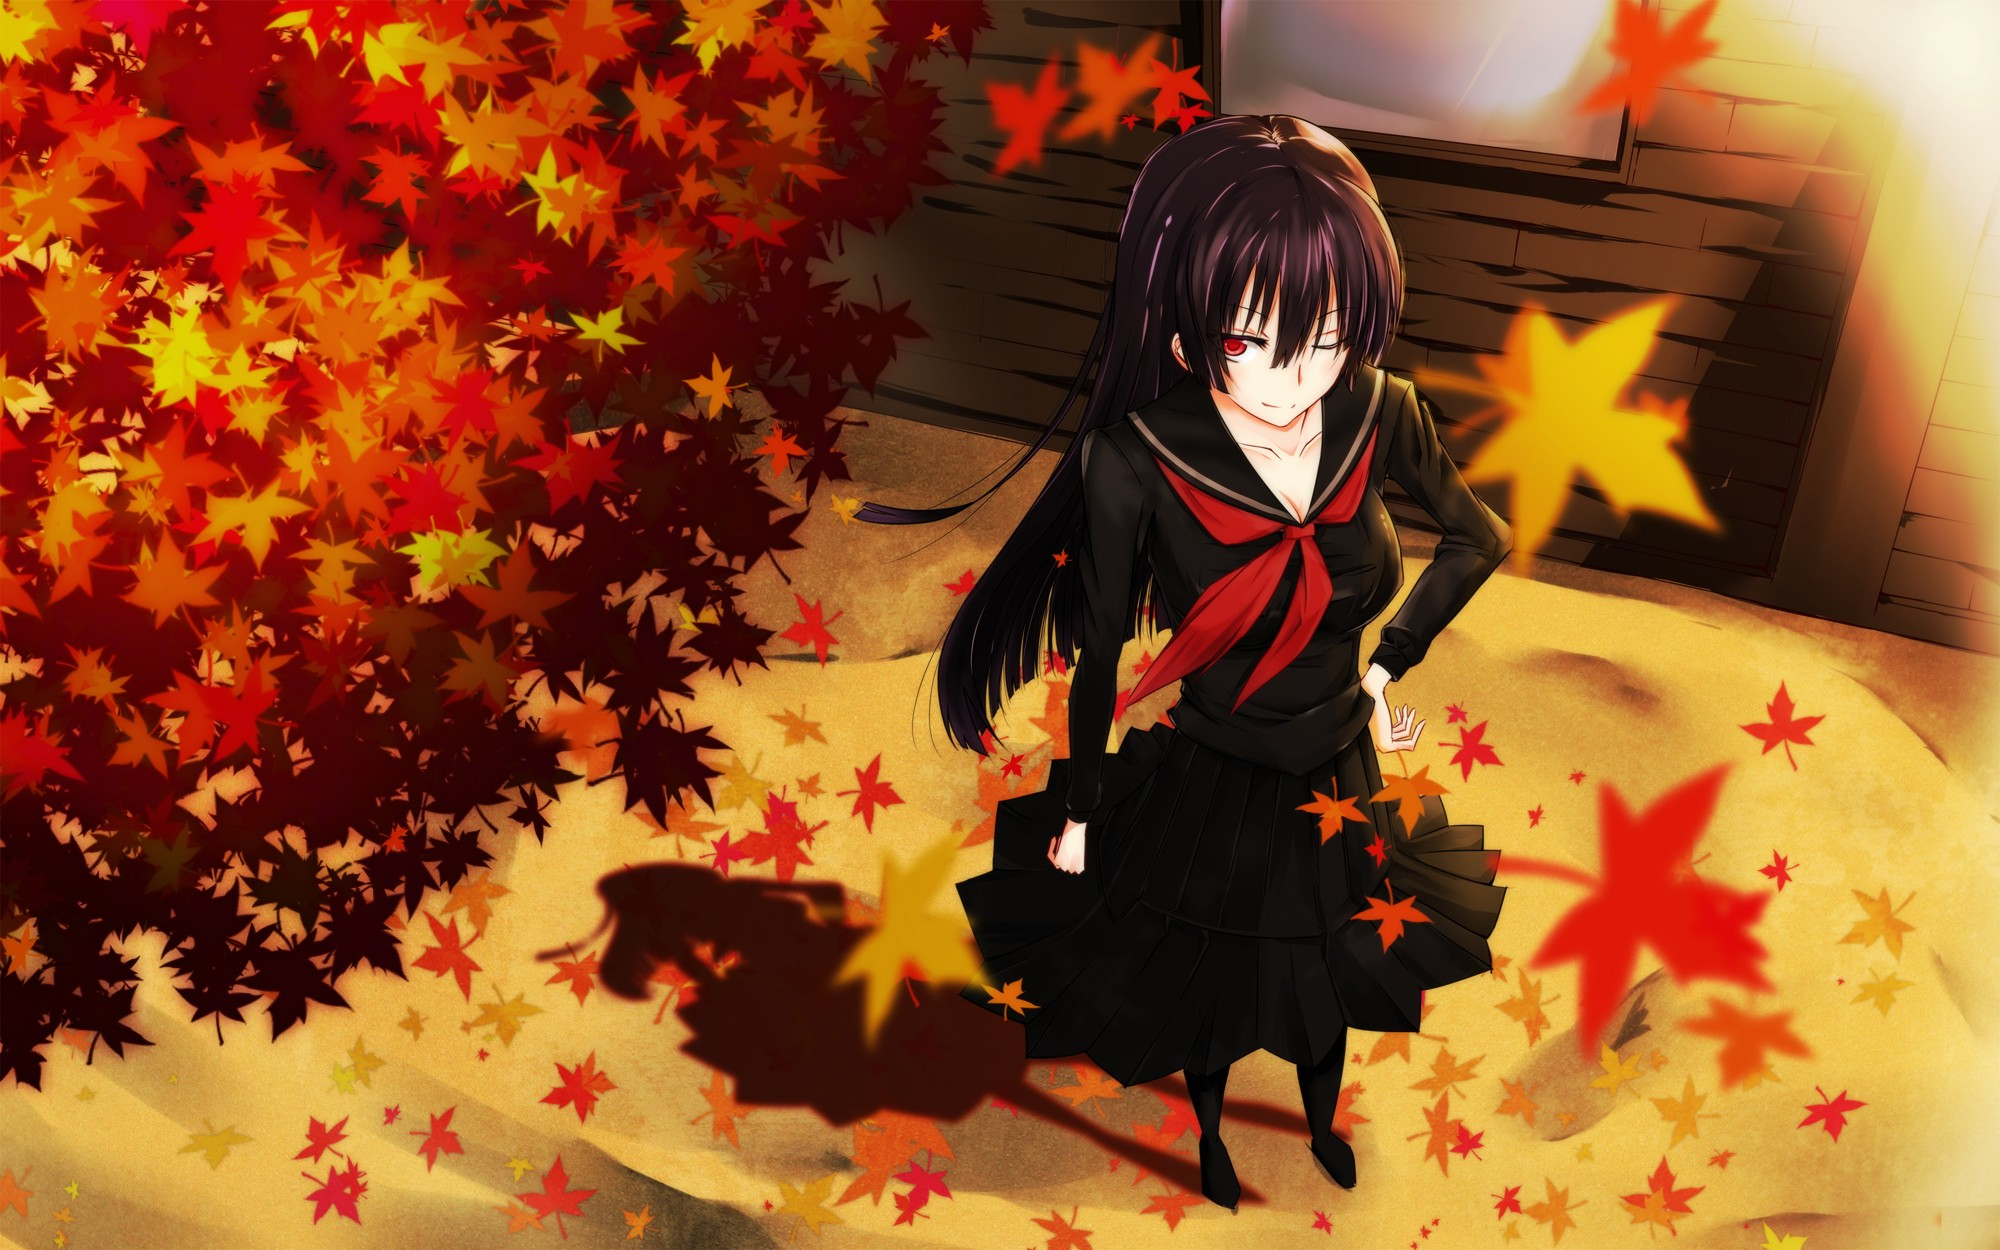 Vintage Fall Wallpaper Tasogare Otome X Amnesia Wallpapers Hd Desktop And